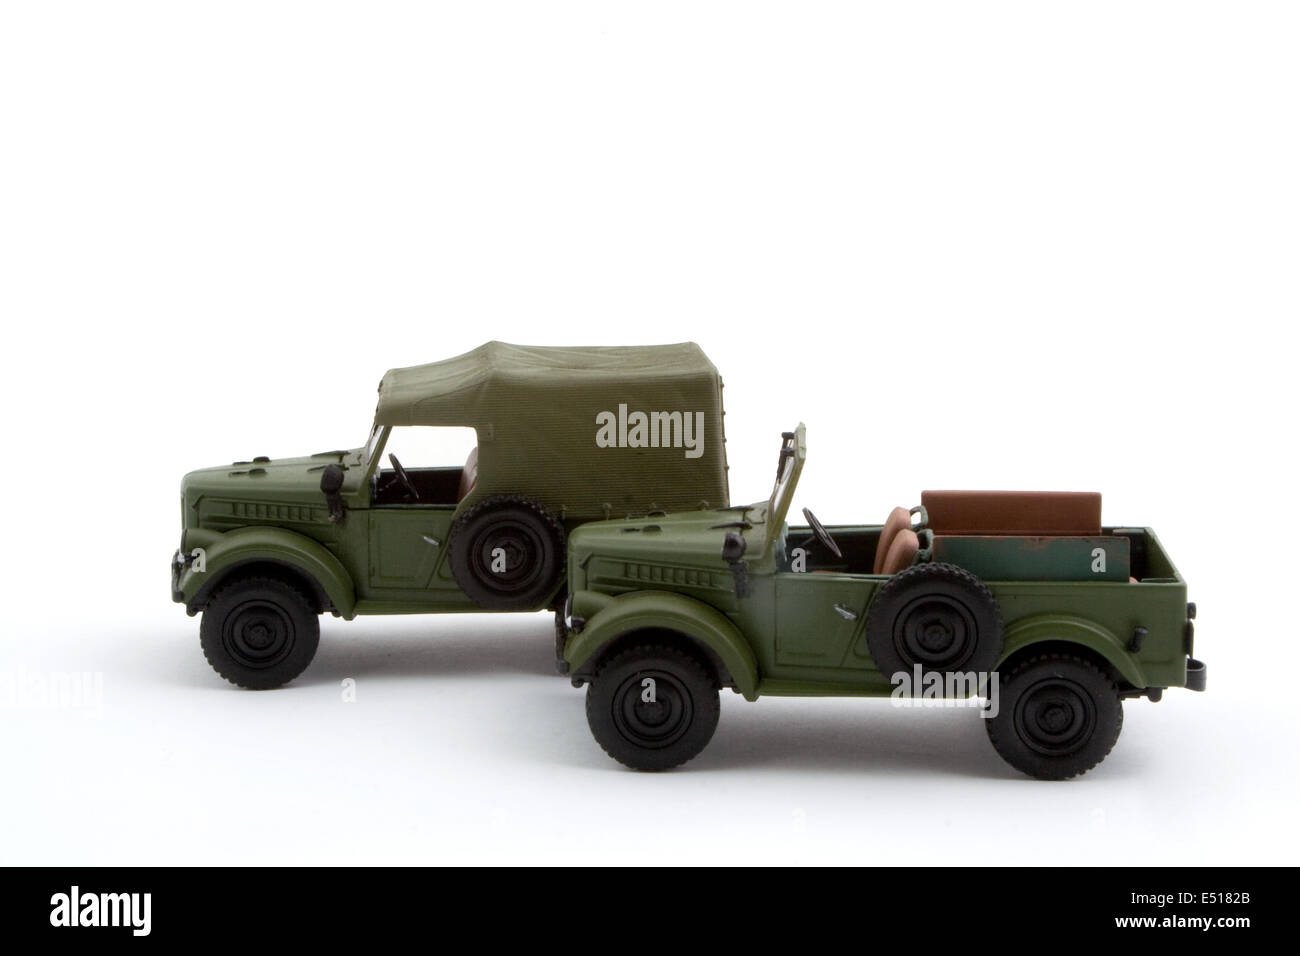 Collection scale model the Off-road car - Stock Image